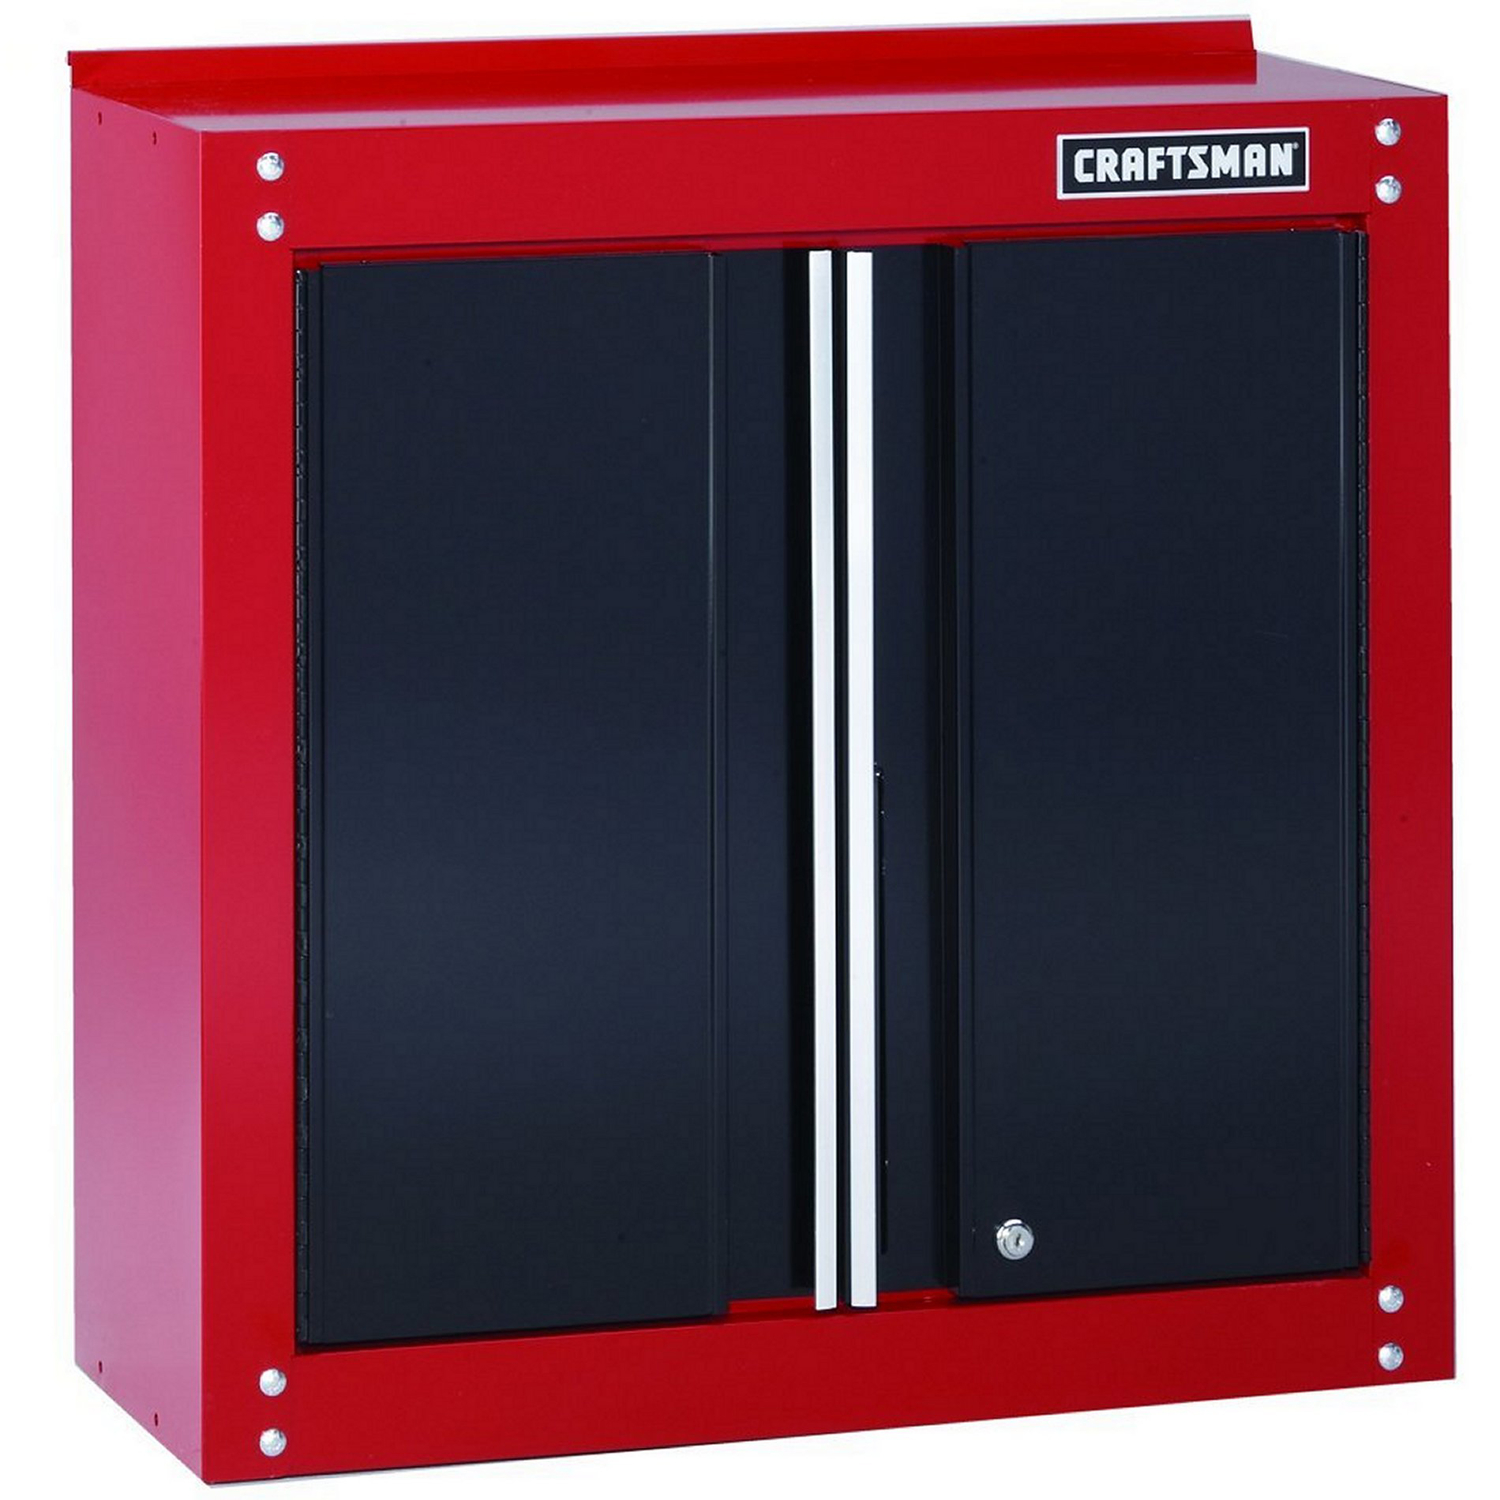 Craftsman 28 In. H X 28 In. W X 12 In. D Steel